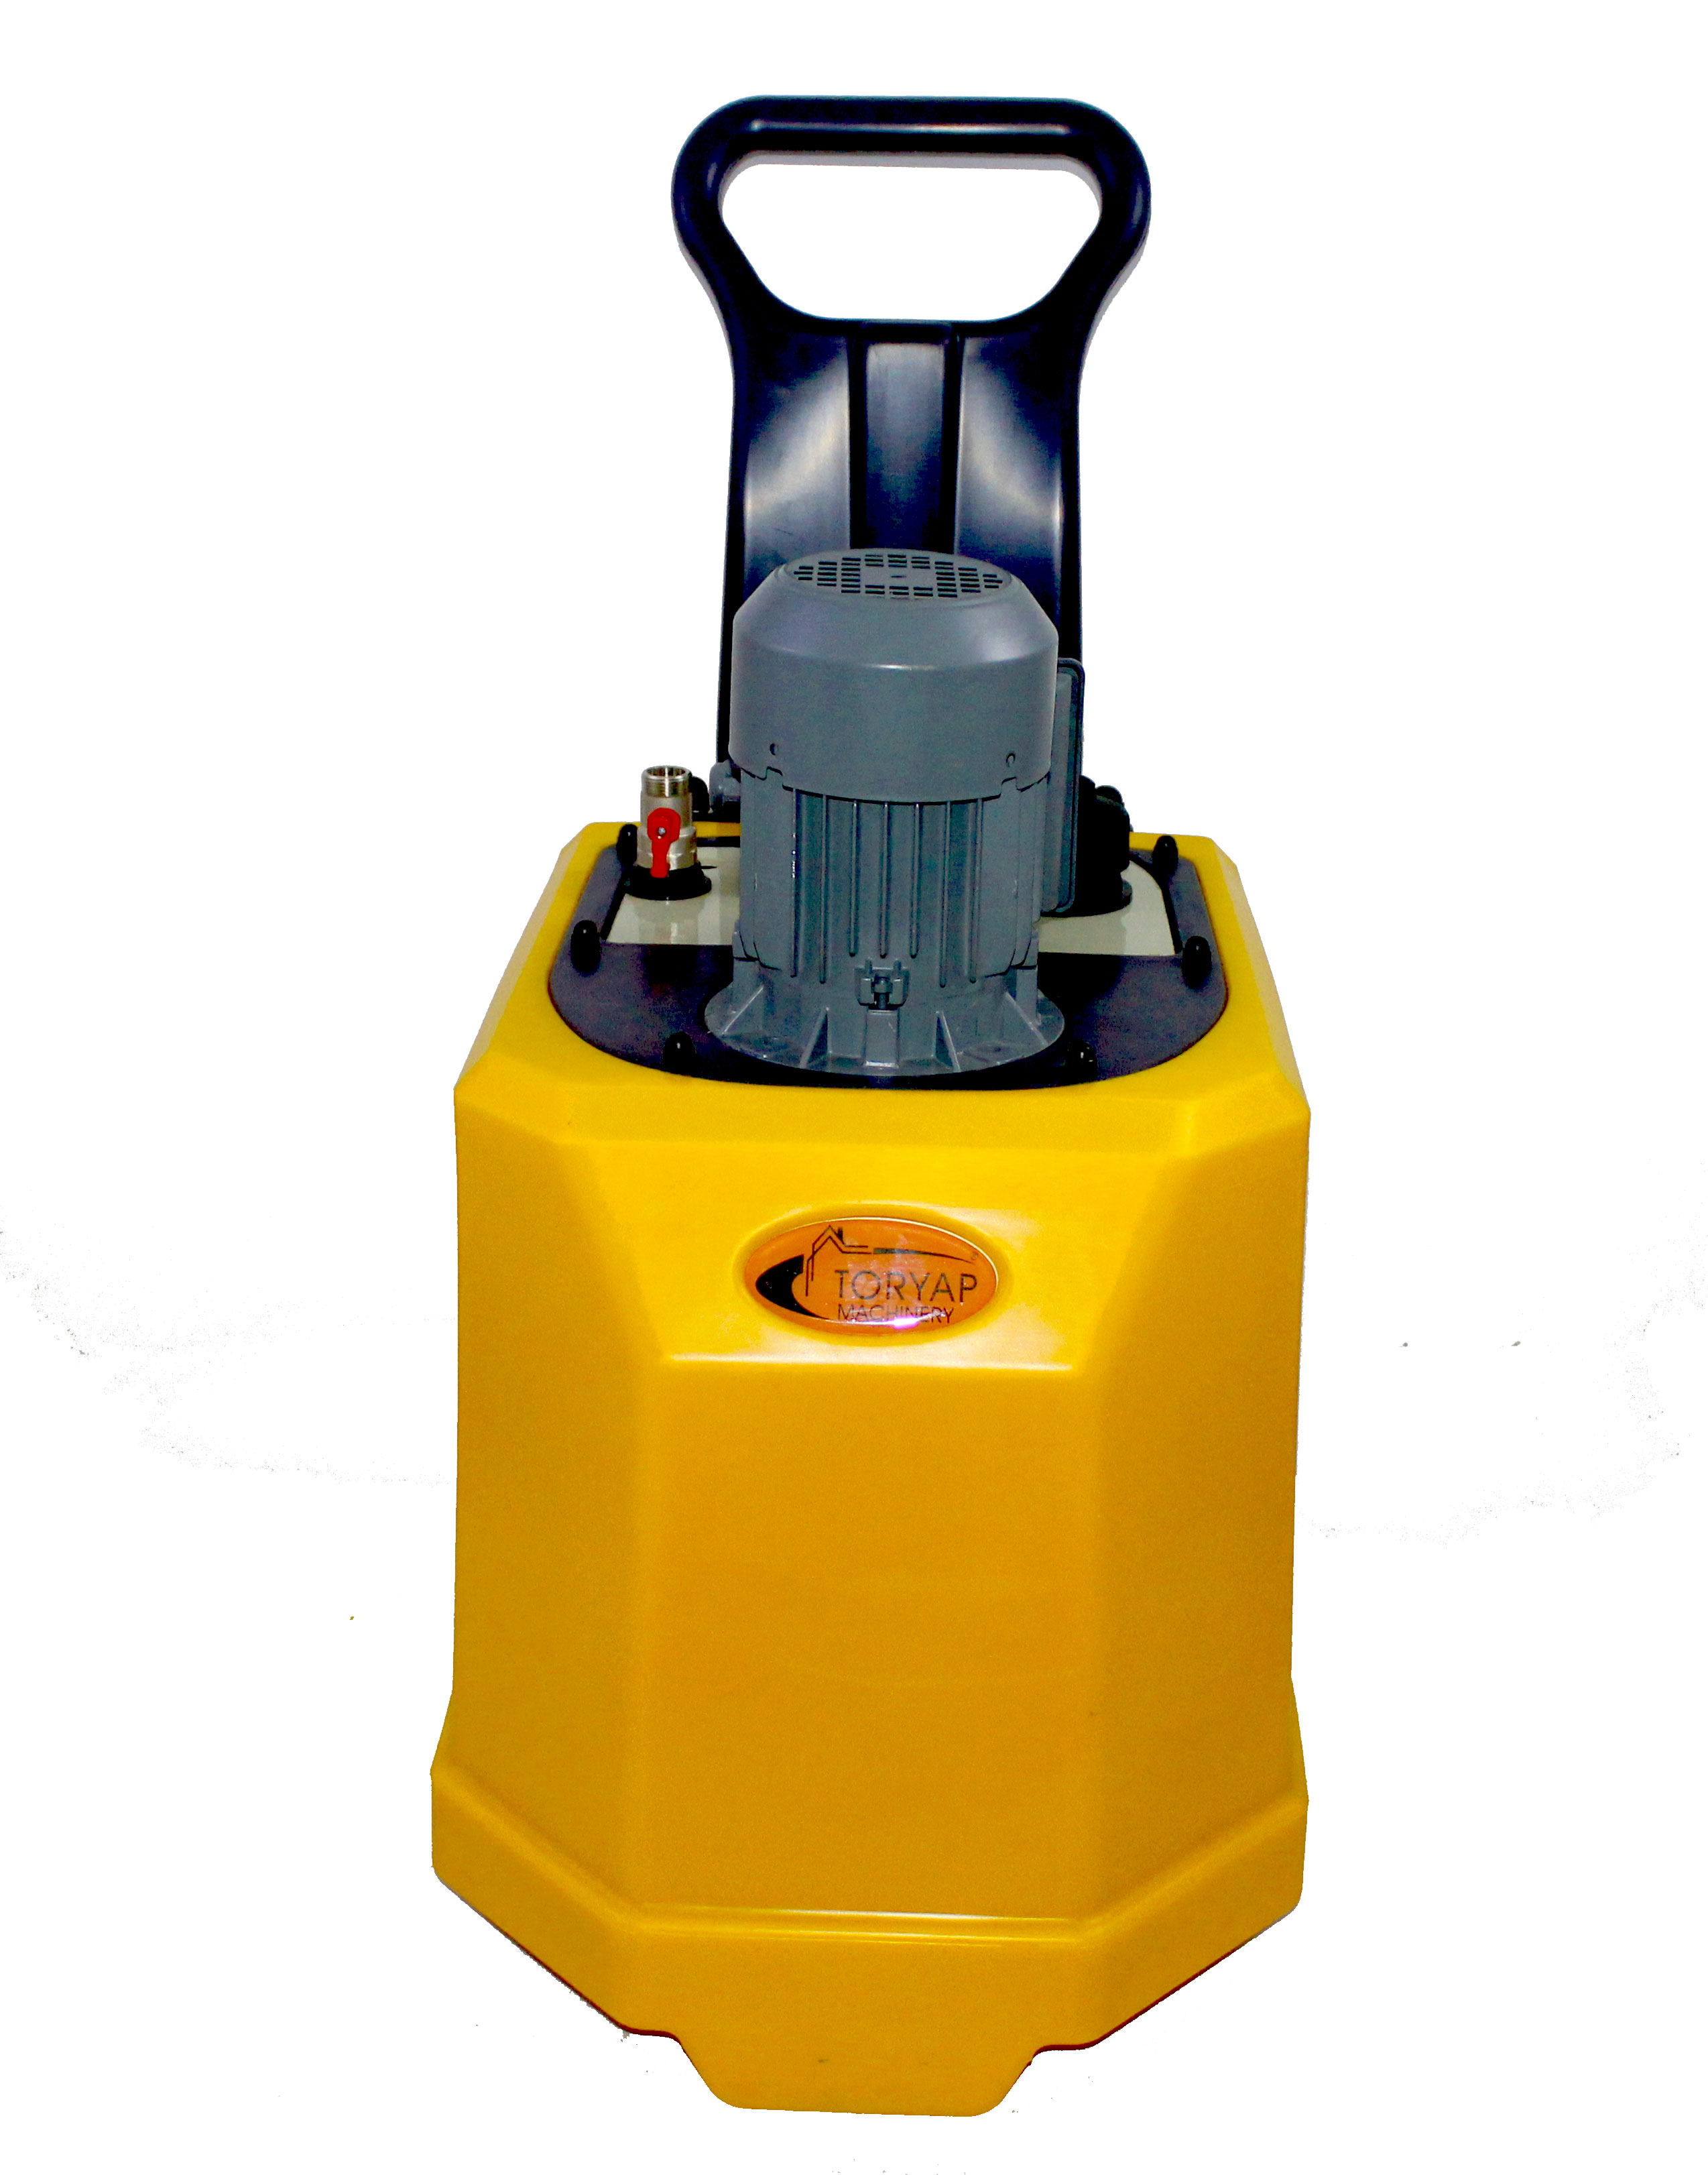 TM 04 DESCALING PUMP / POWER FLUSHING PUMP UNIT